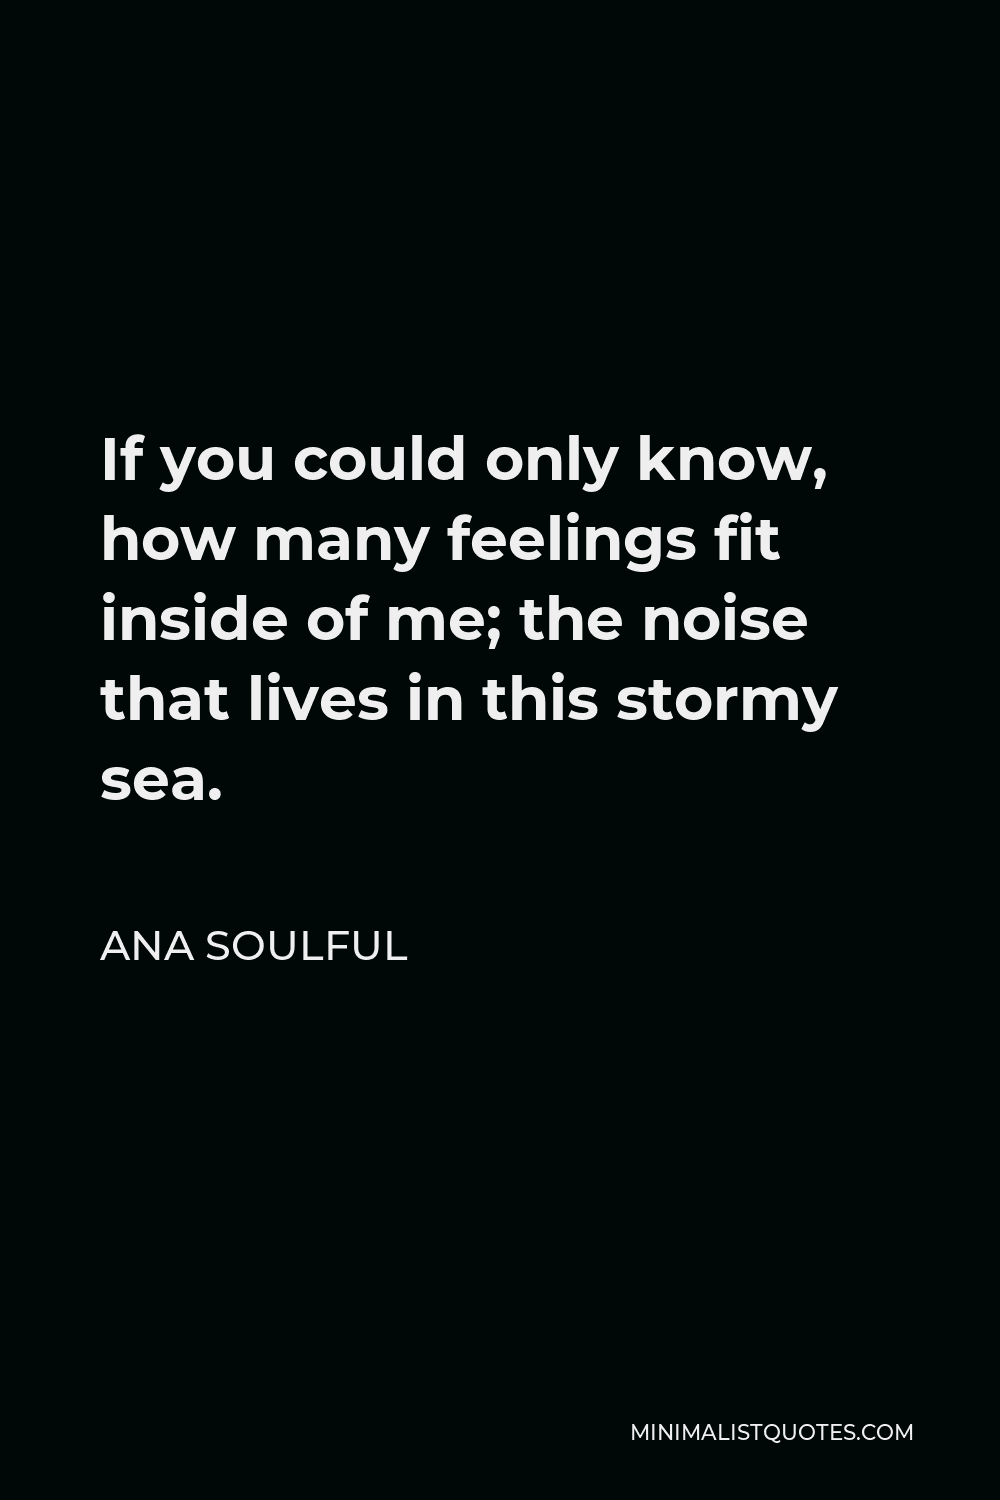 Ana Soulful Quote - If you could only know, how many feelings fit inside of me; the noise that lives in this stormy sea.